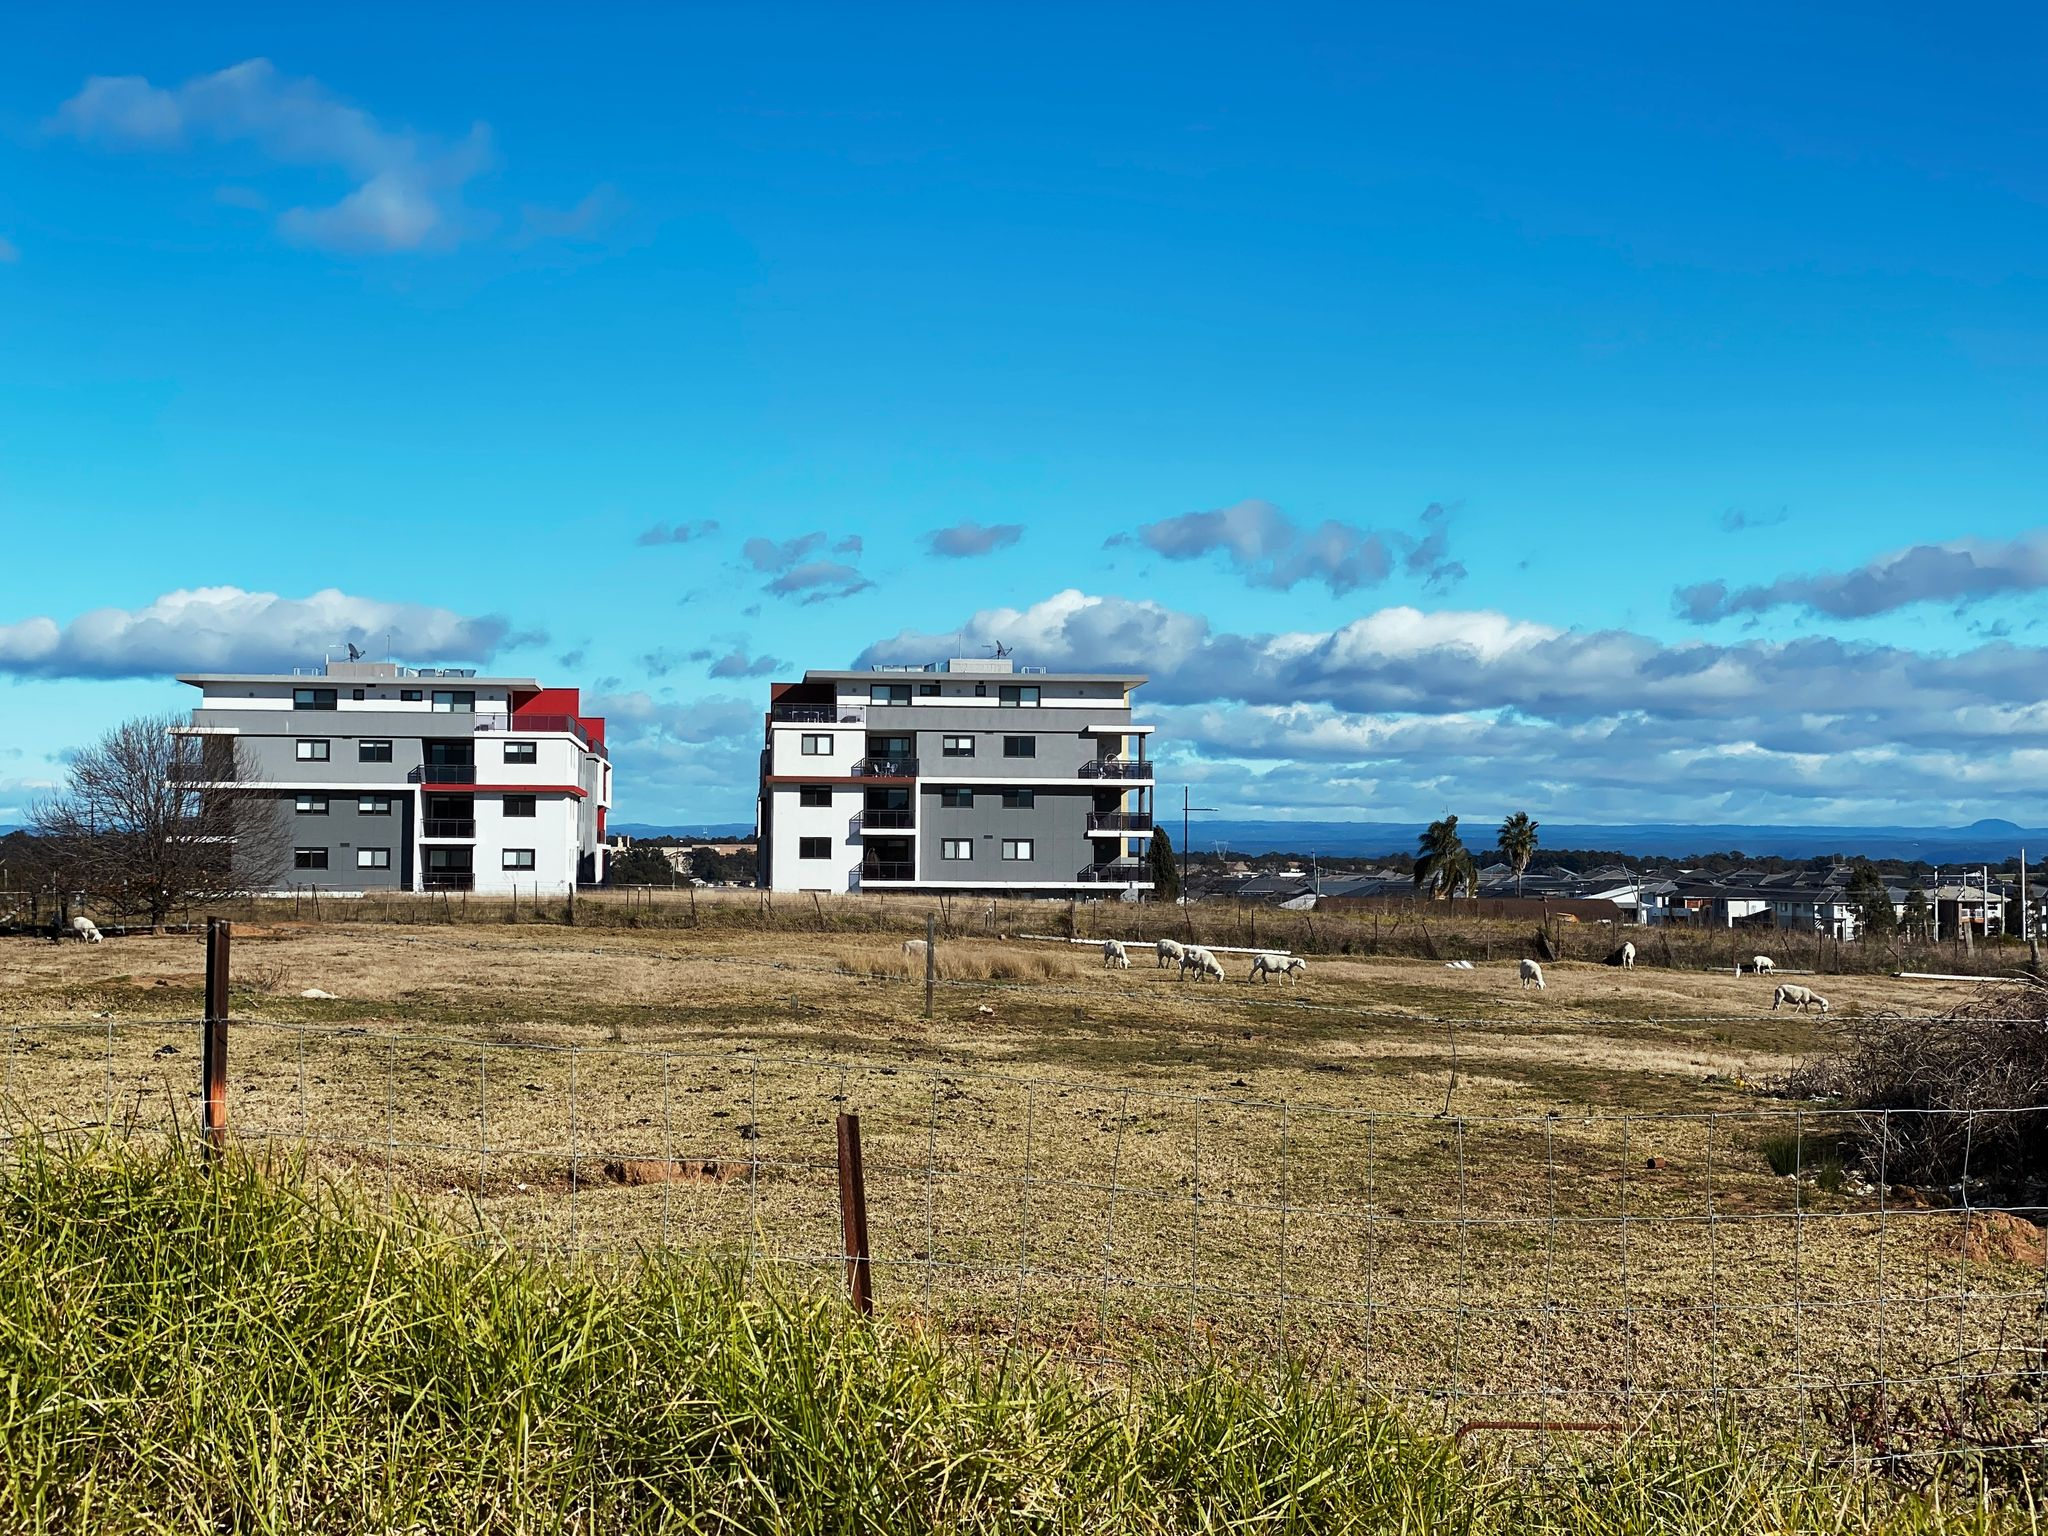 A photo of some less distant sheep standing in a field that's in front of two newly-constructed four-storey unit blocks.